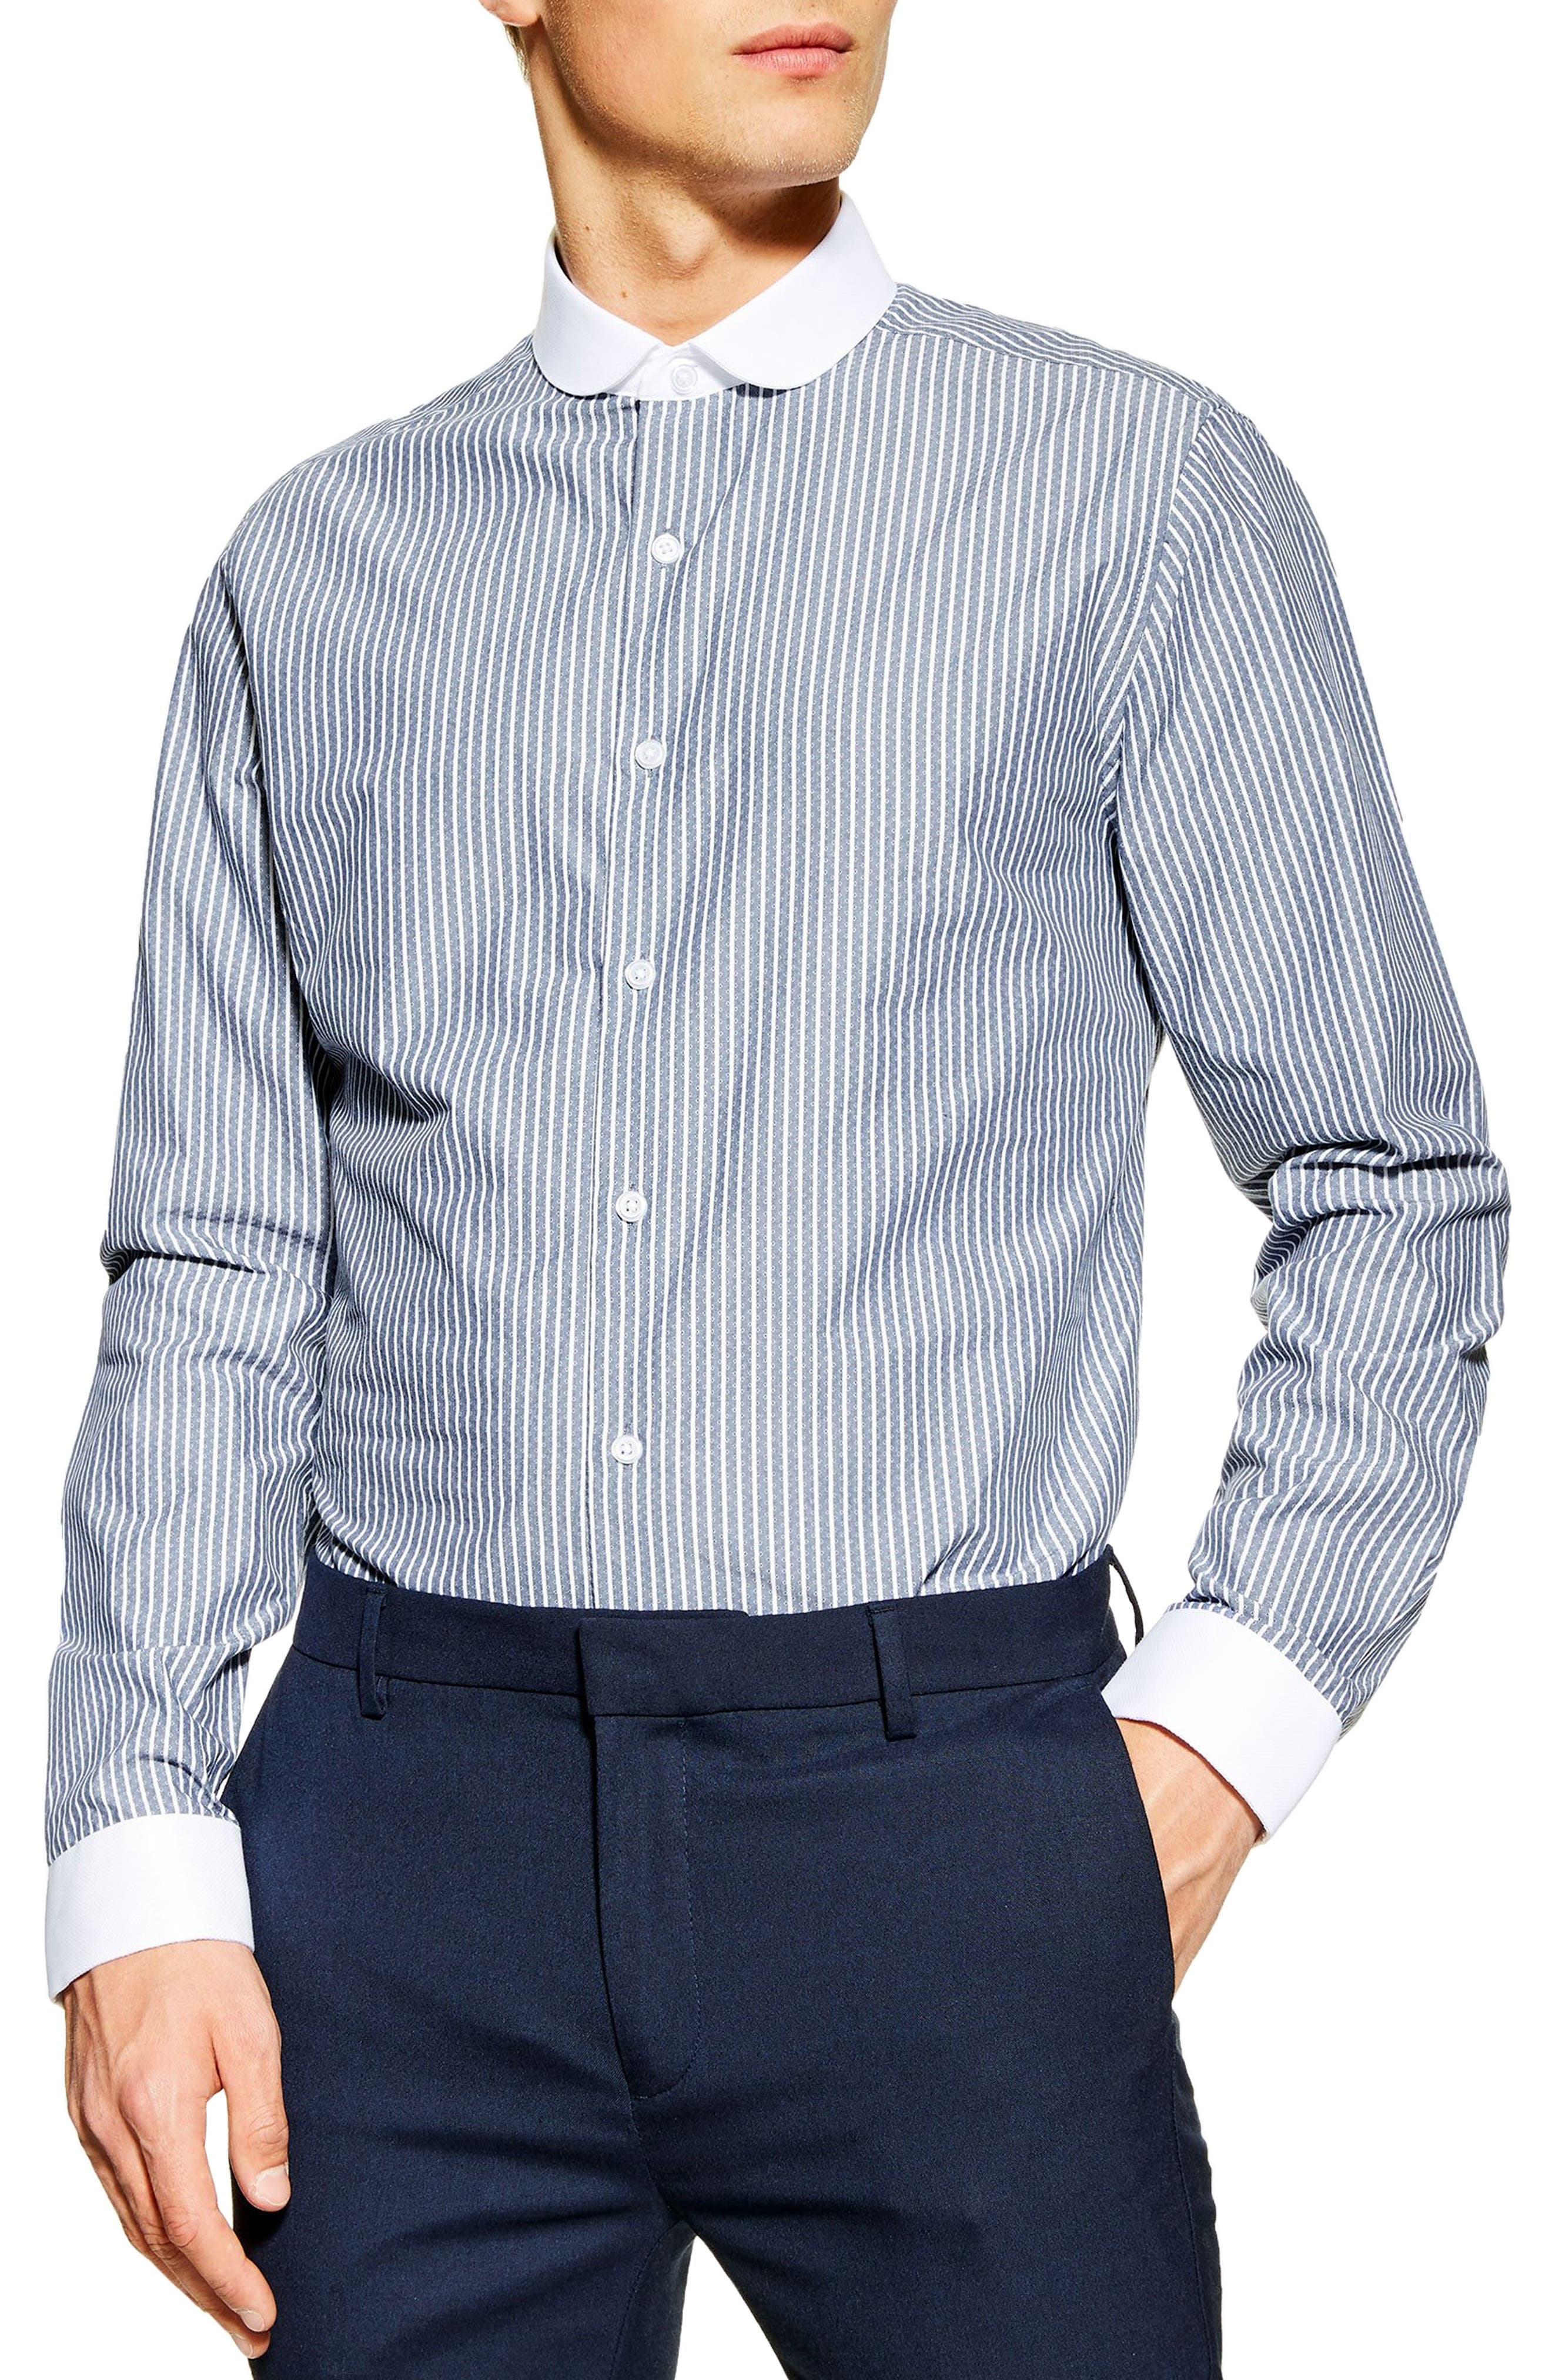 2a369098 1920s Fashion for Men Mens Topman Stretch Skinny Fit Dobby Stripe Shirt  $55.00 AT vintagedancer.